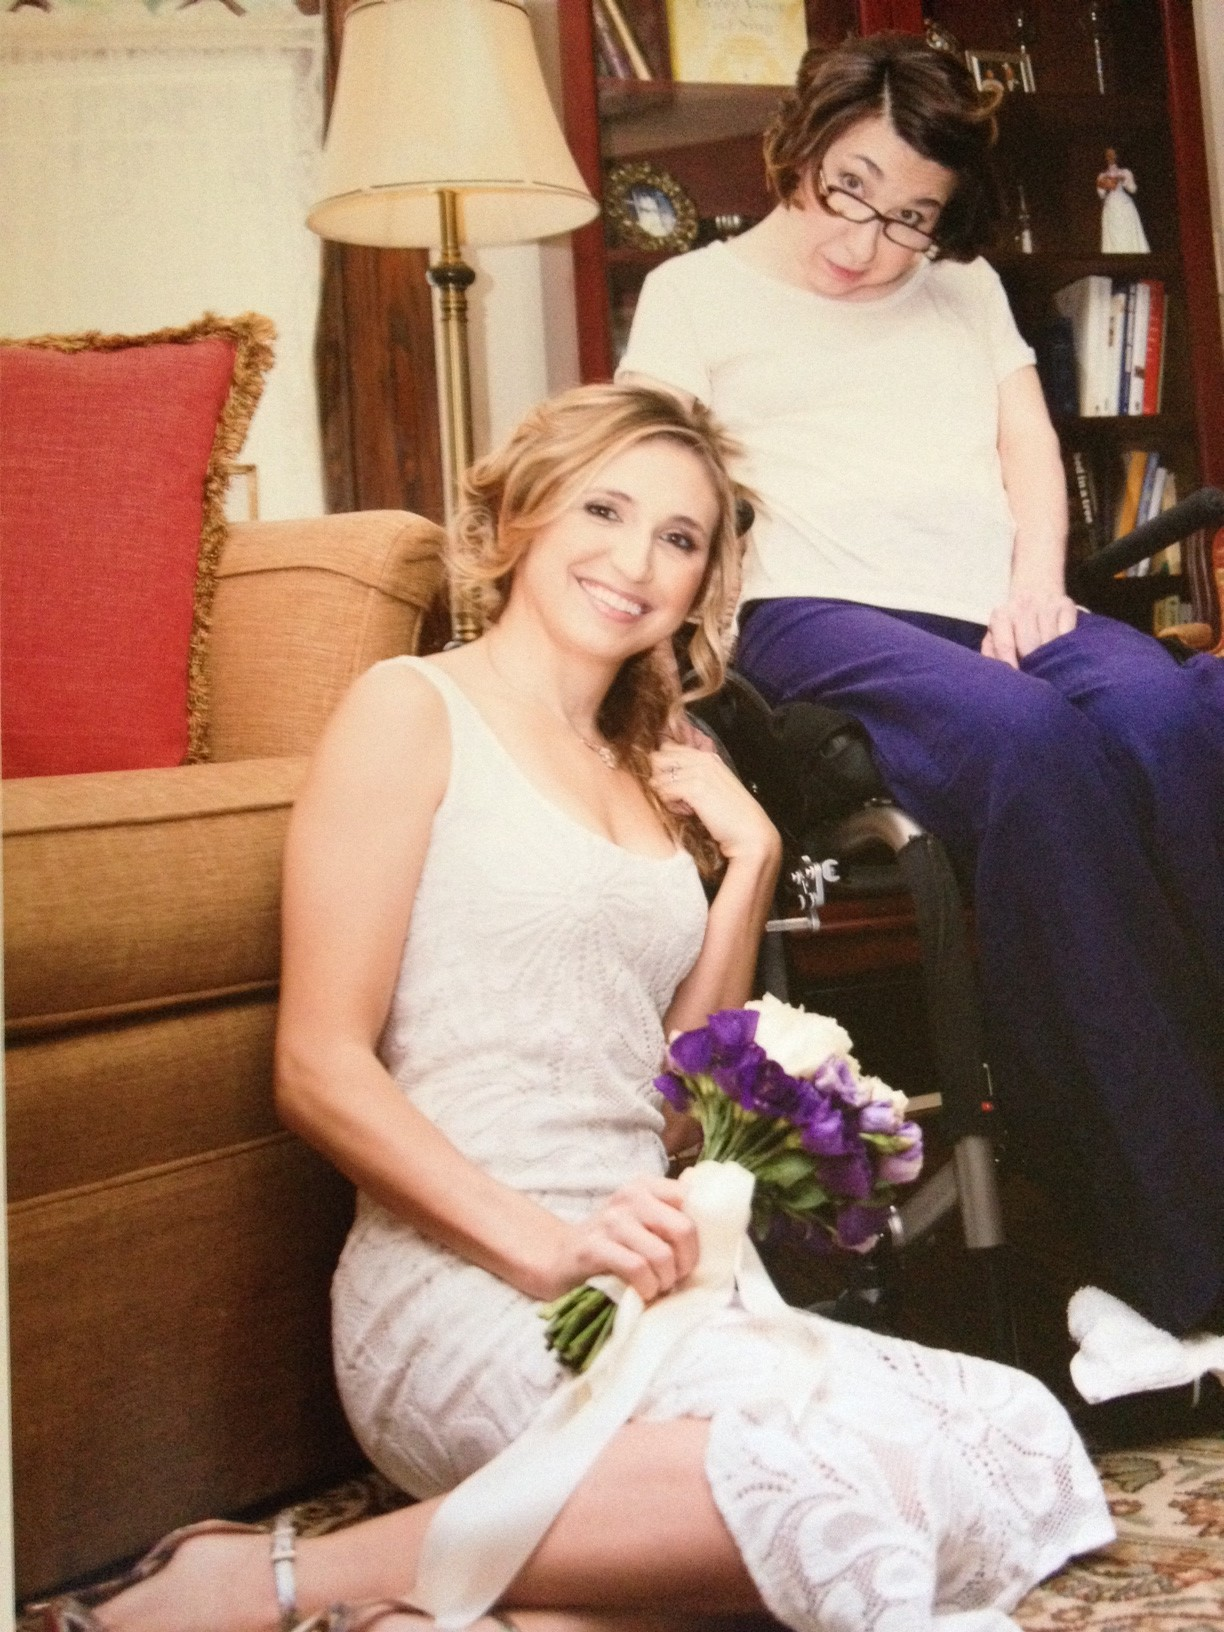 Candice Valenta and her mother, Margie. Photo by Gina Jolly photography.